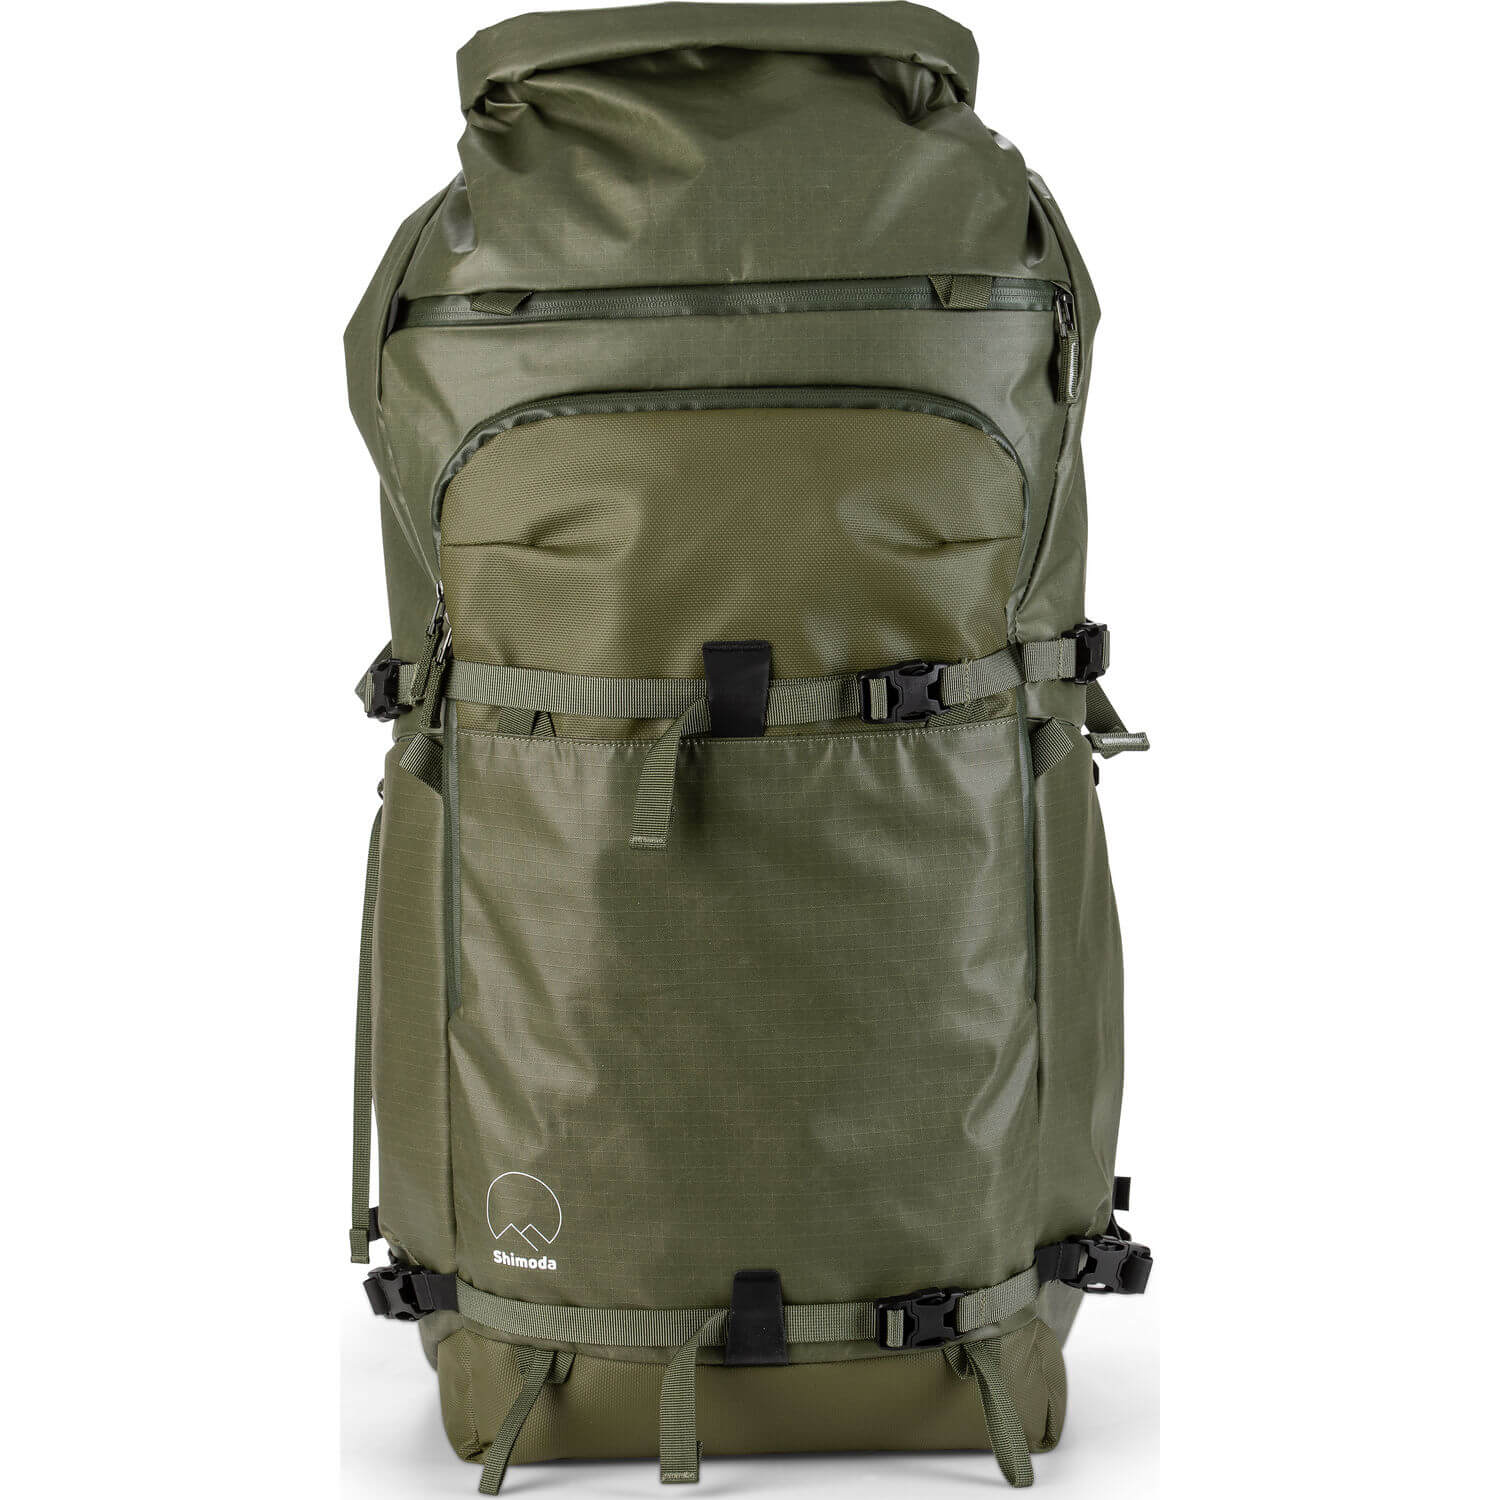 Shimoda Designs Action X70 Backpack Starter Kit Army Green 3